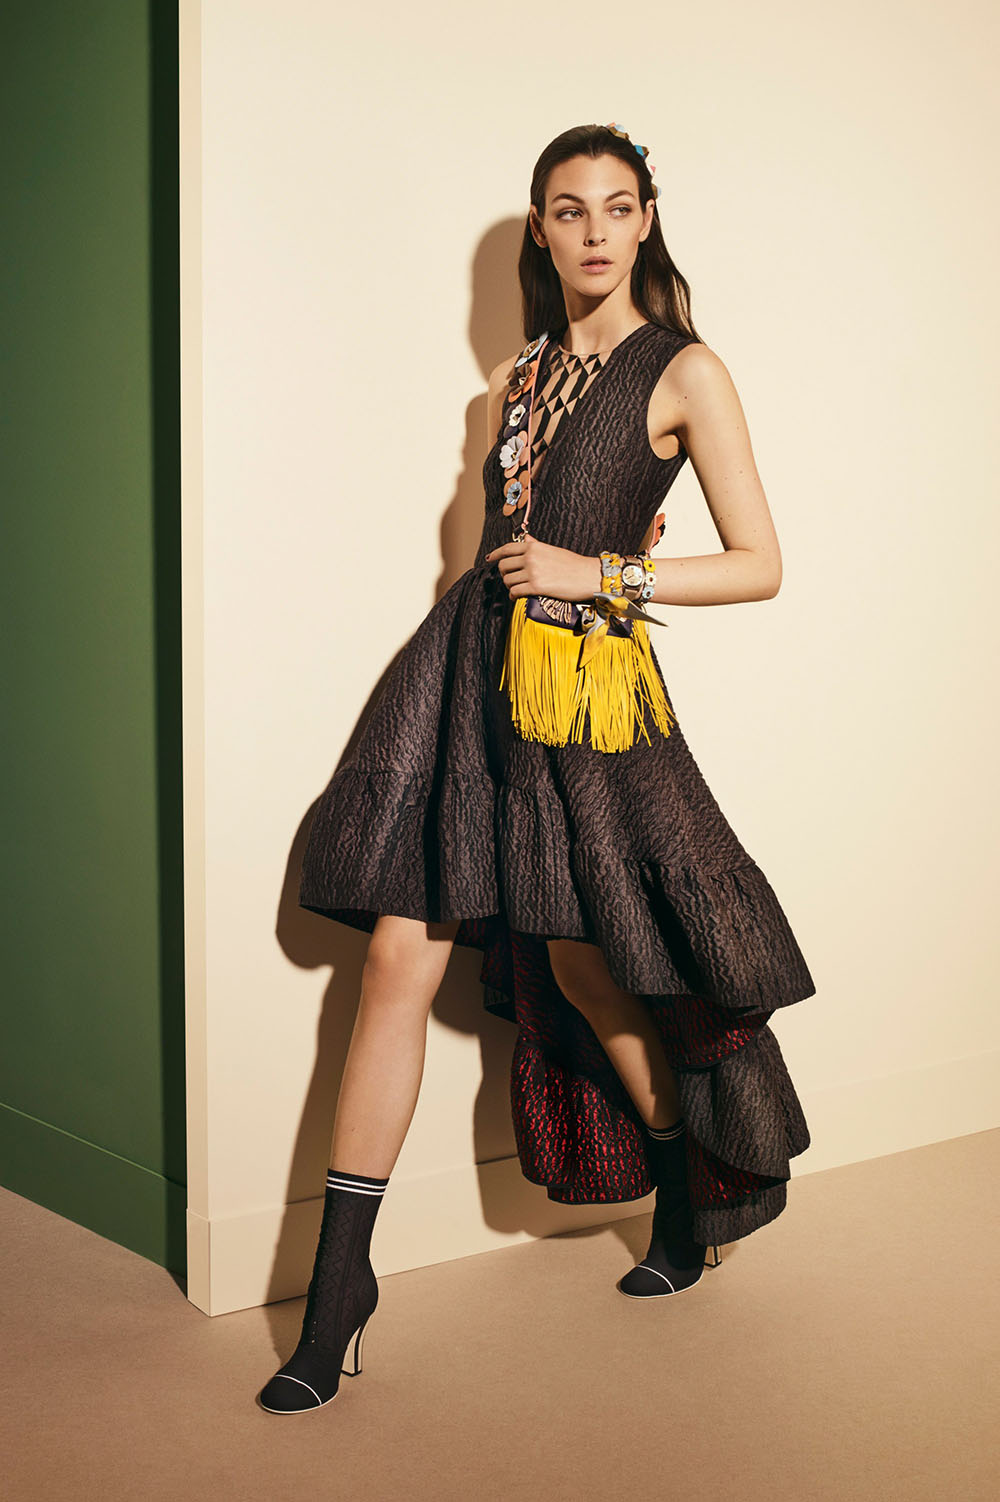 Ruffles, lace and bows all find a home in Fendi's offering for pre-fall 2017. With a decidedly feminine and romantic tone this collection is an opulent homage to decretive embellishment. Certainly less stark then what we have seen from the brand in the past. It embraces the idea of decadence but in a manner that is wholly approachable and moder